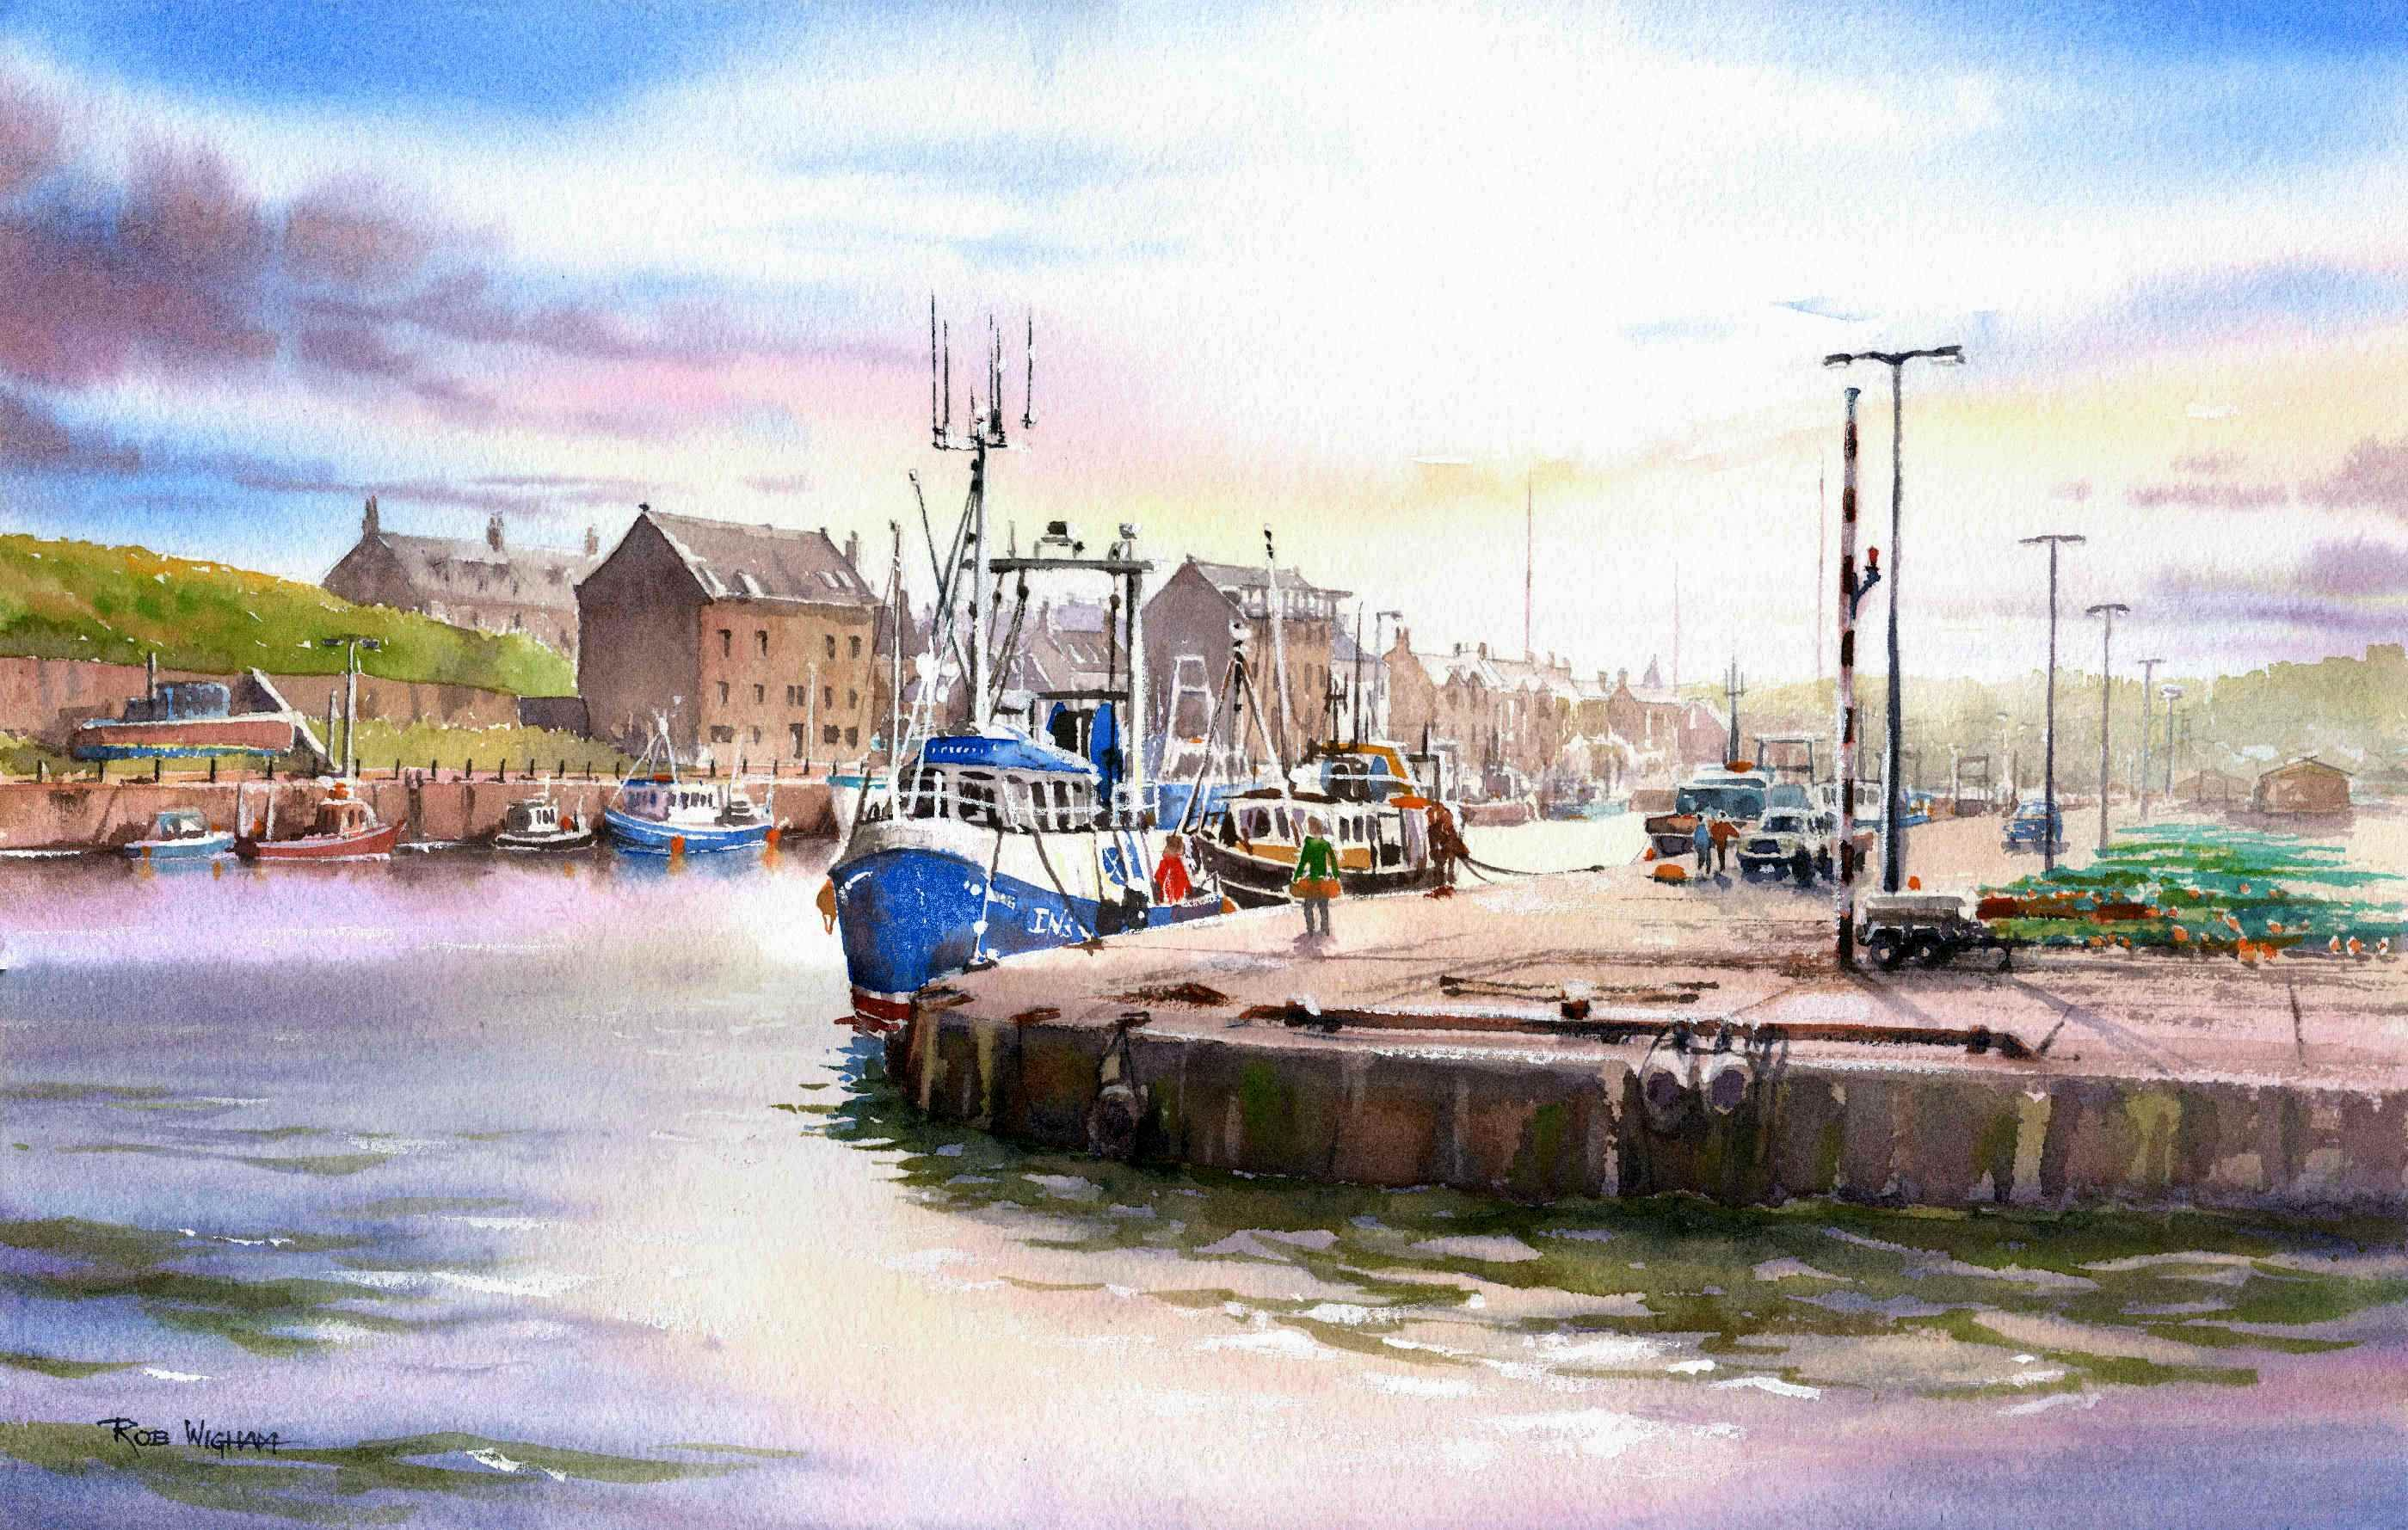 Burghead Harbour From The Sea Watt Watercolour 52 X 34 Cm